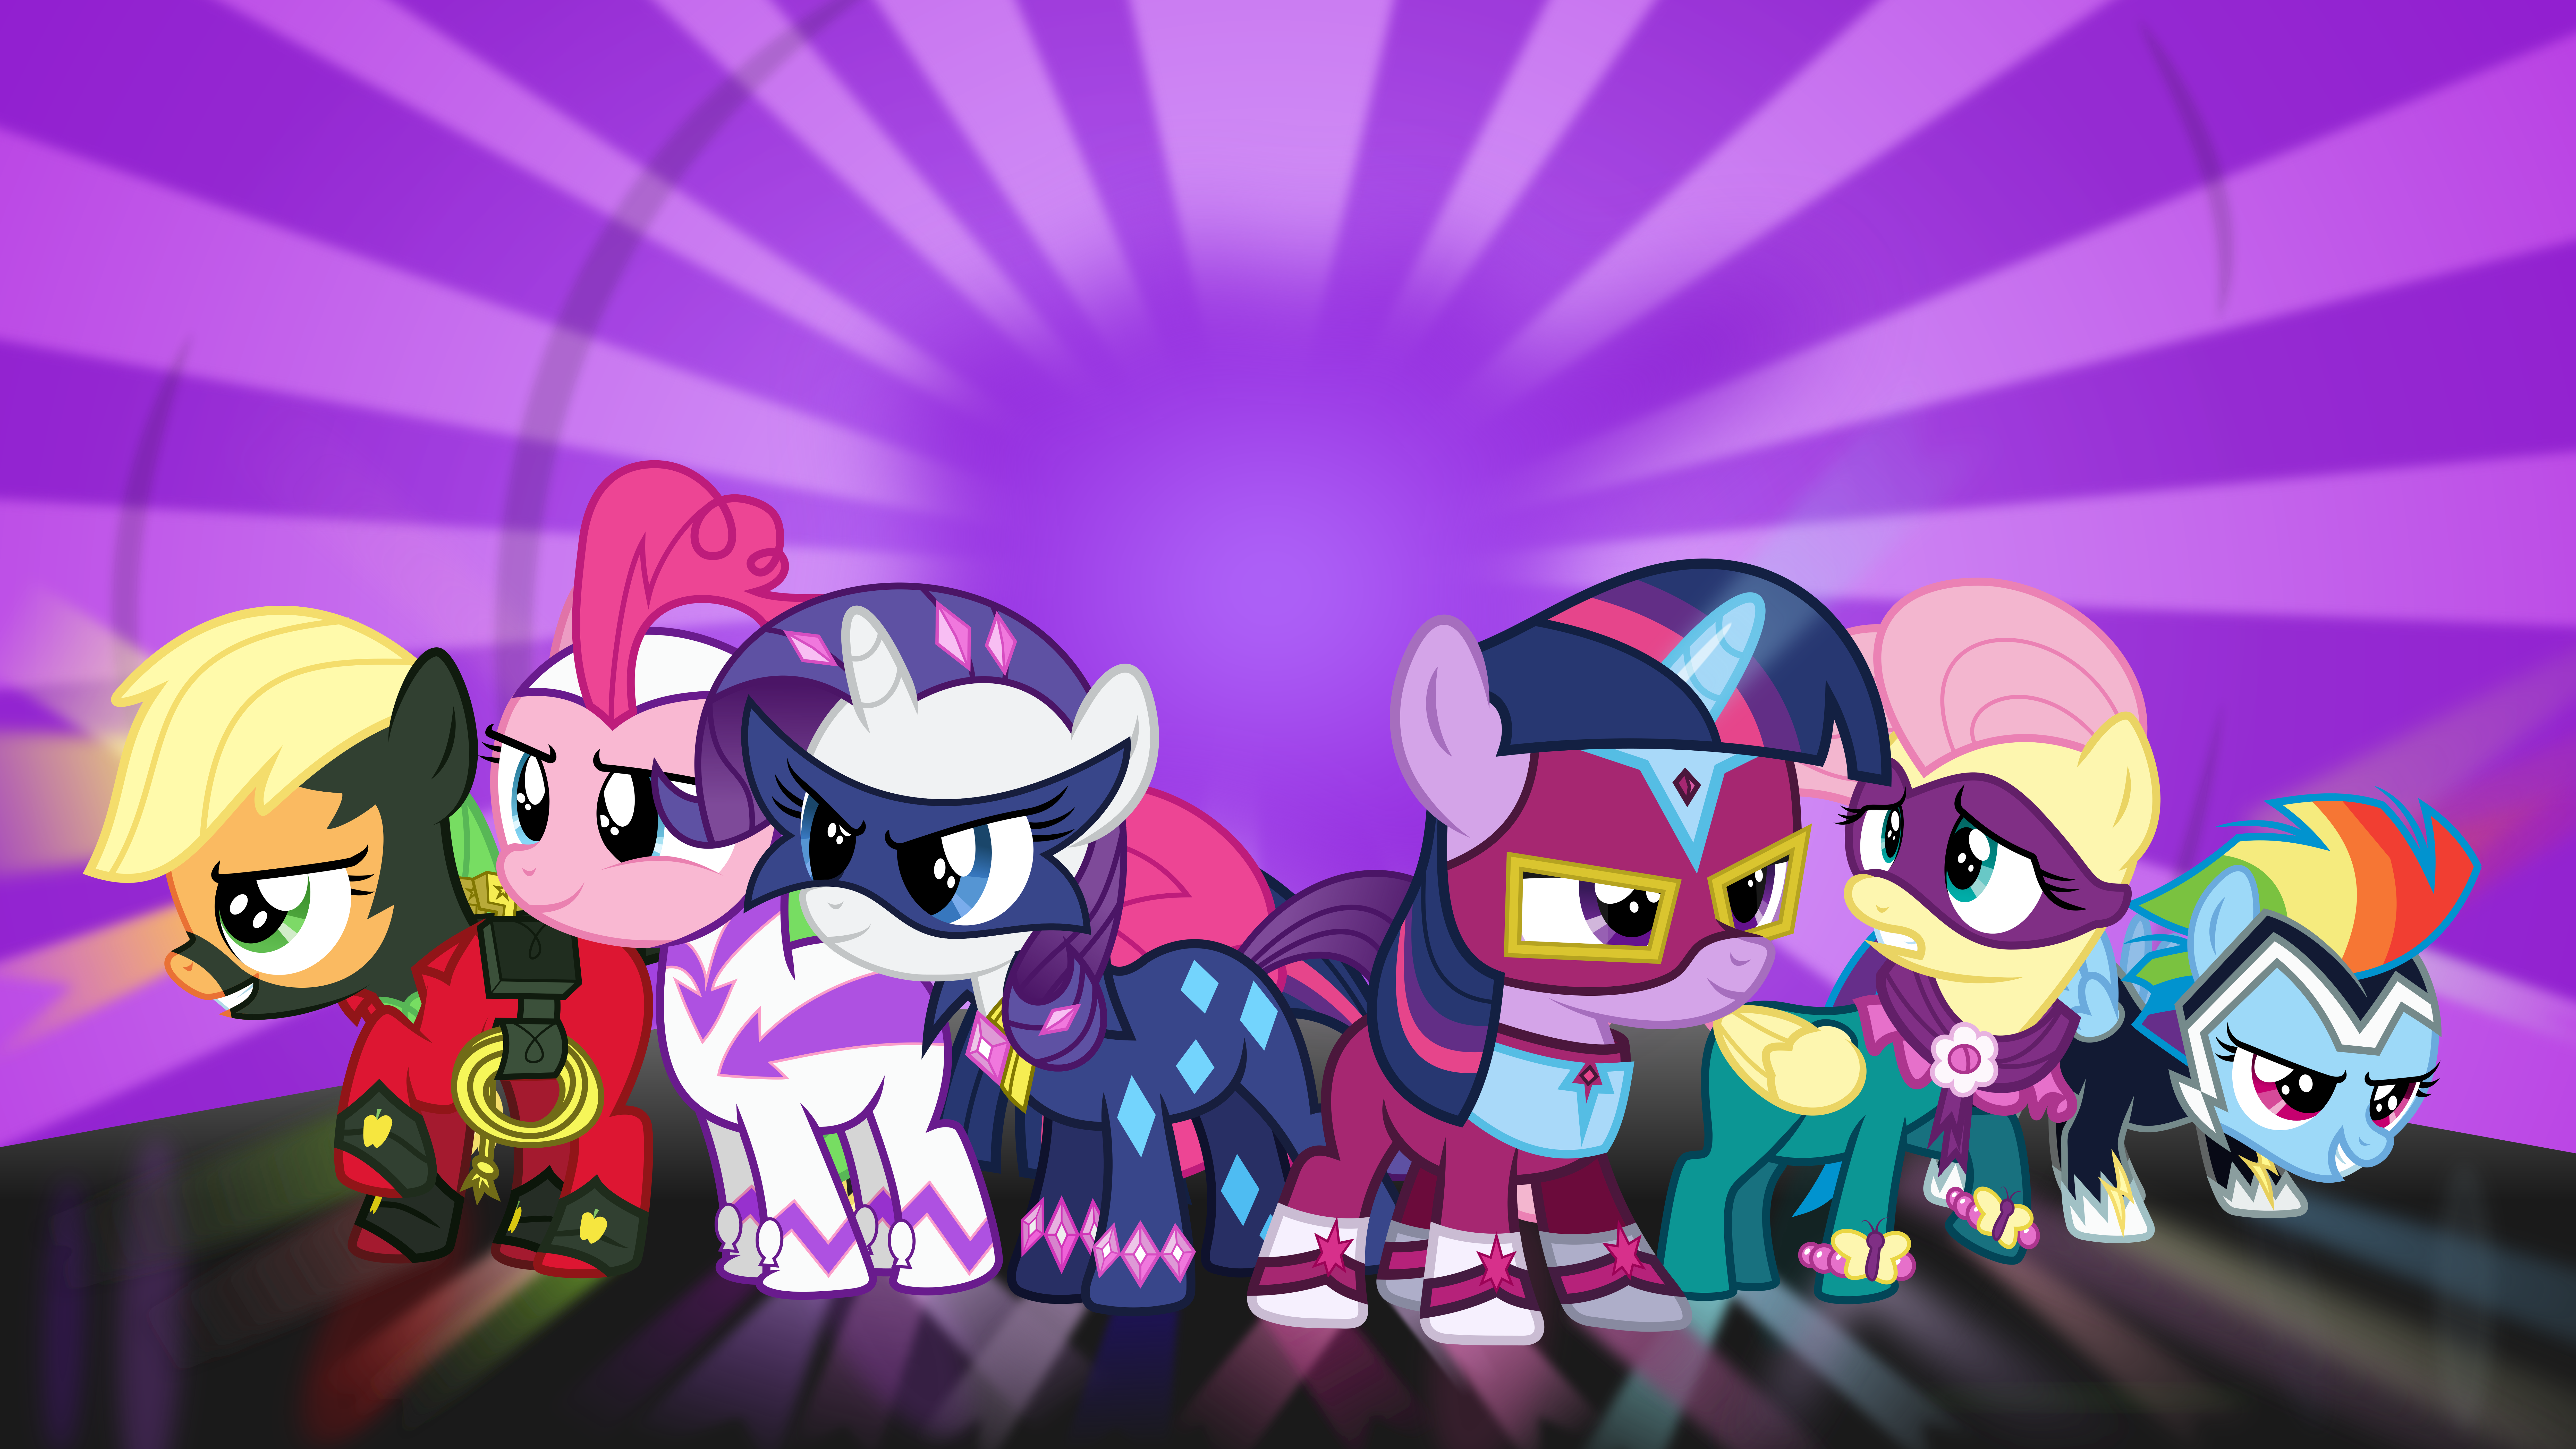 [Collab] The Power Fillies by imageconstructor and liamwhite1